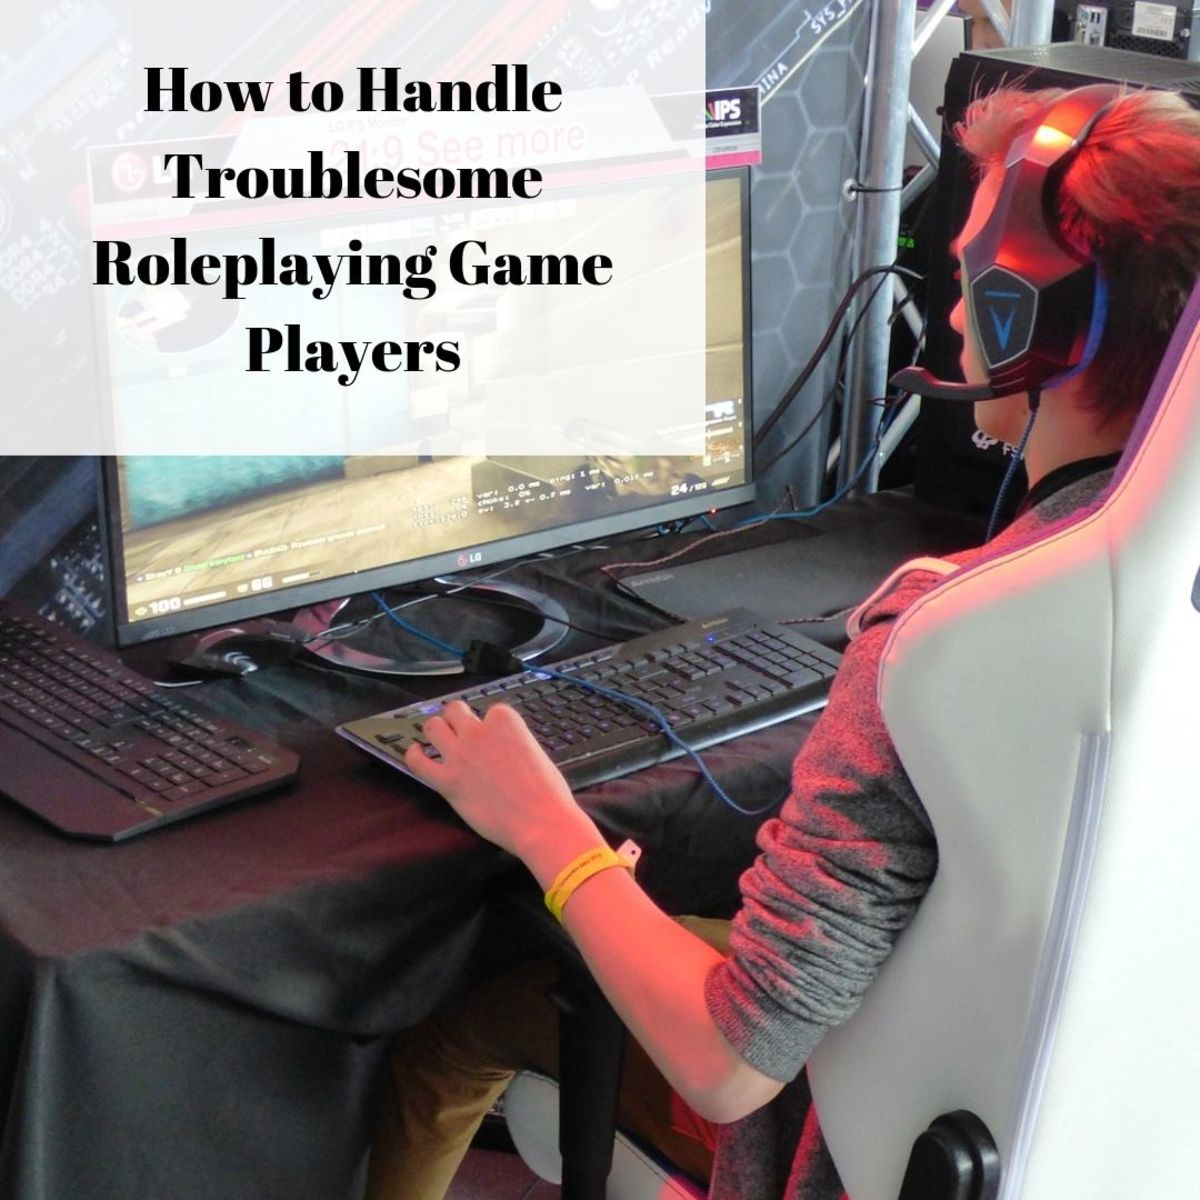 Four Ways to Handle Troublesome Roleplaying Game Players